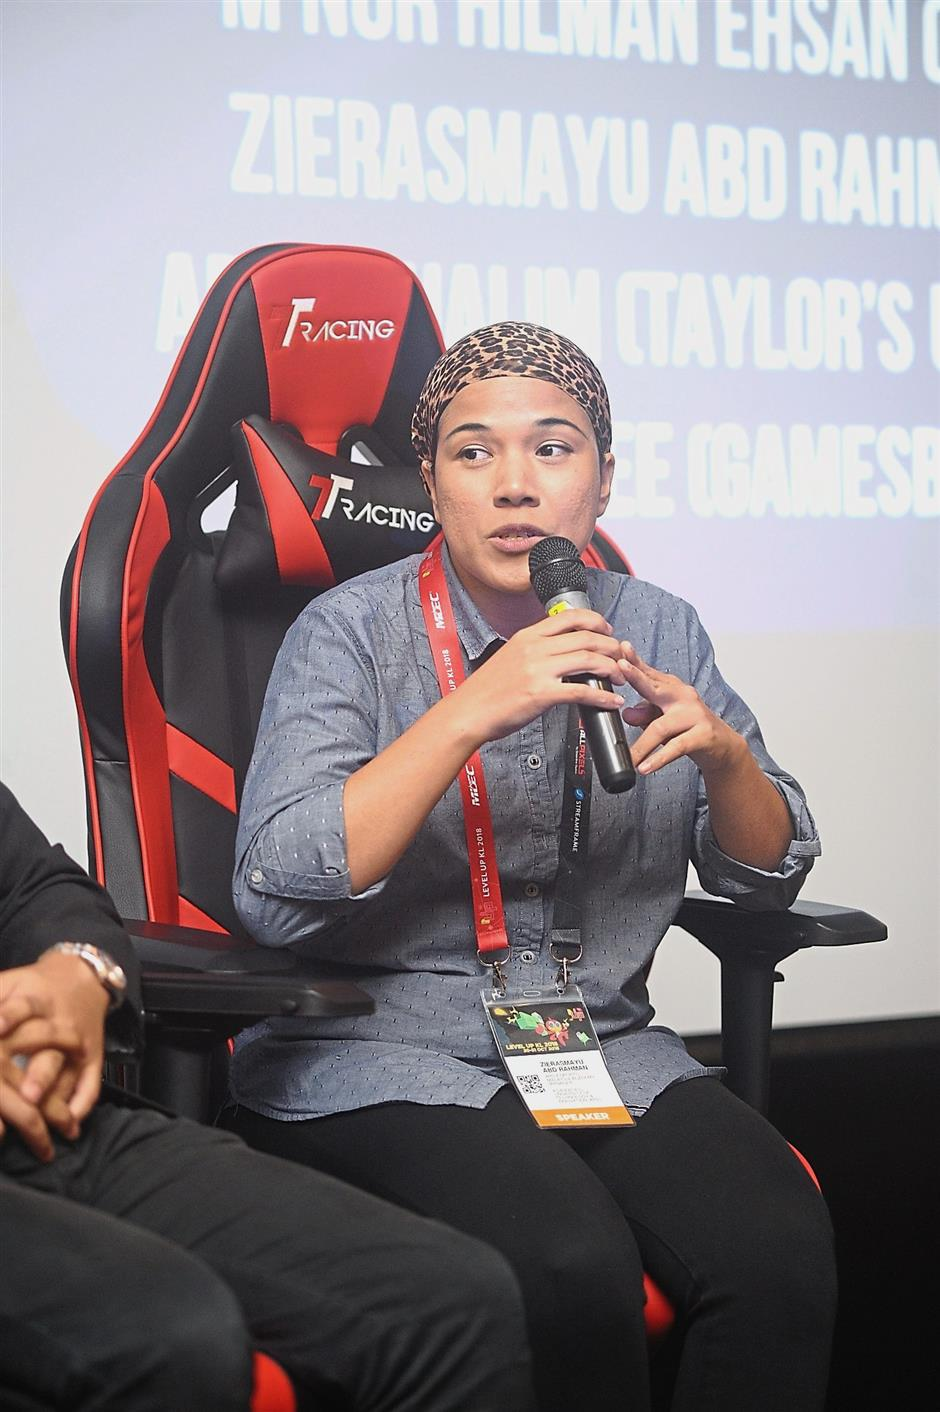 Zierasmayu believes building an ecosystem for eSports players needs to start from university. — LevelUp KL 2018